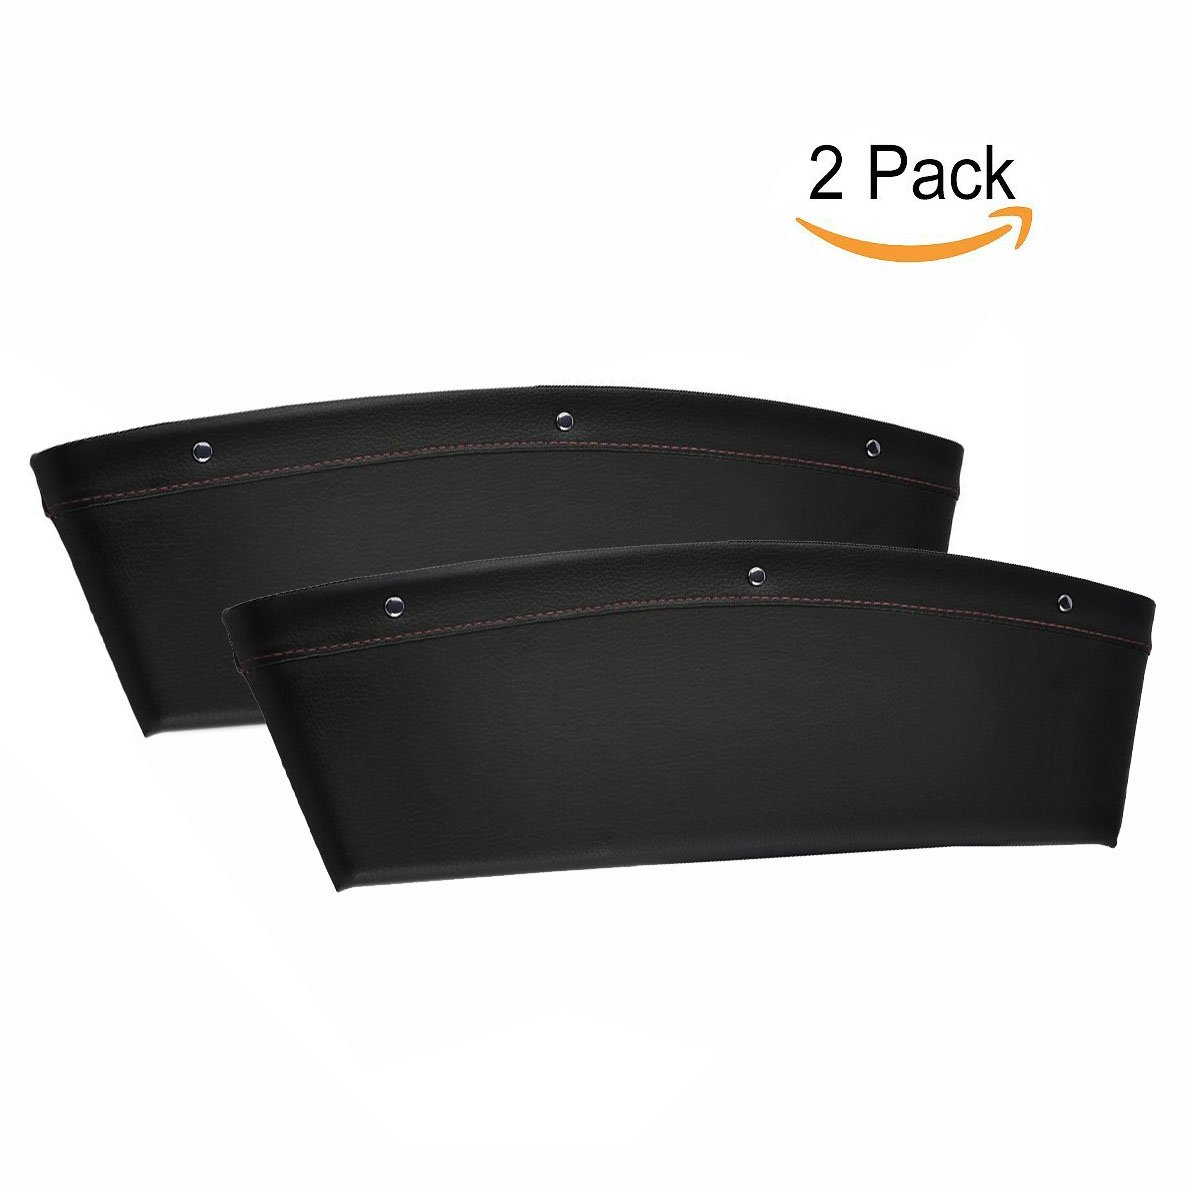 OFKP/® 2 pack Leather Car Seat Side Pocket Caddy Slit Pocket Catcher Storage Organizer Interior Car Accessories Between Seat and Console Black